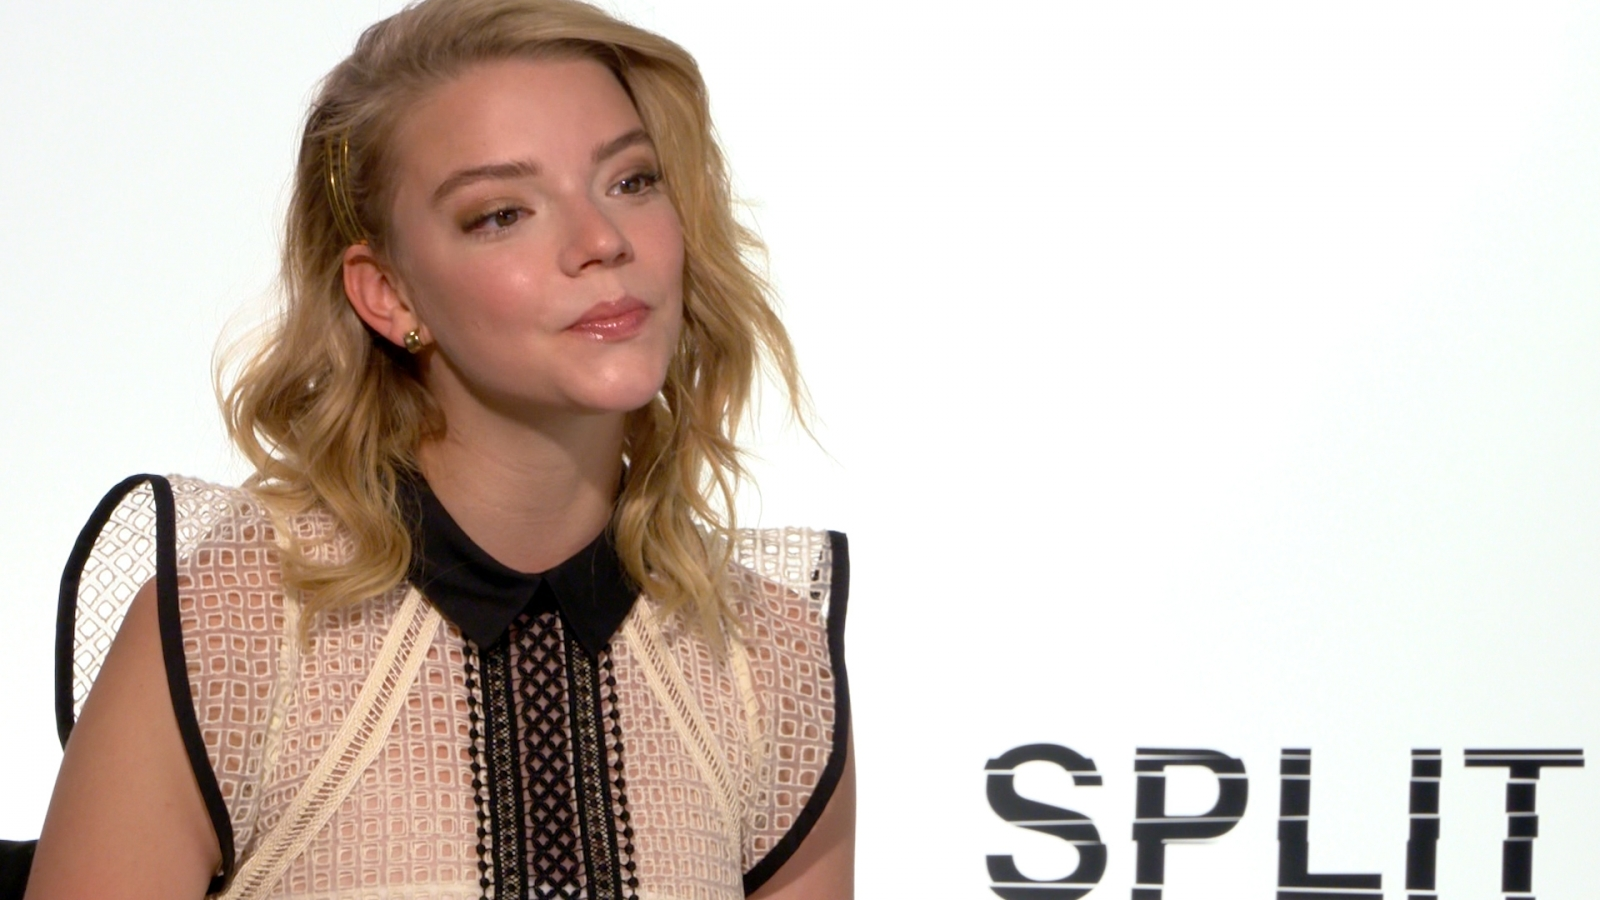 Split Actor Anya Taylor-Joy on working with James McAvoy